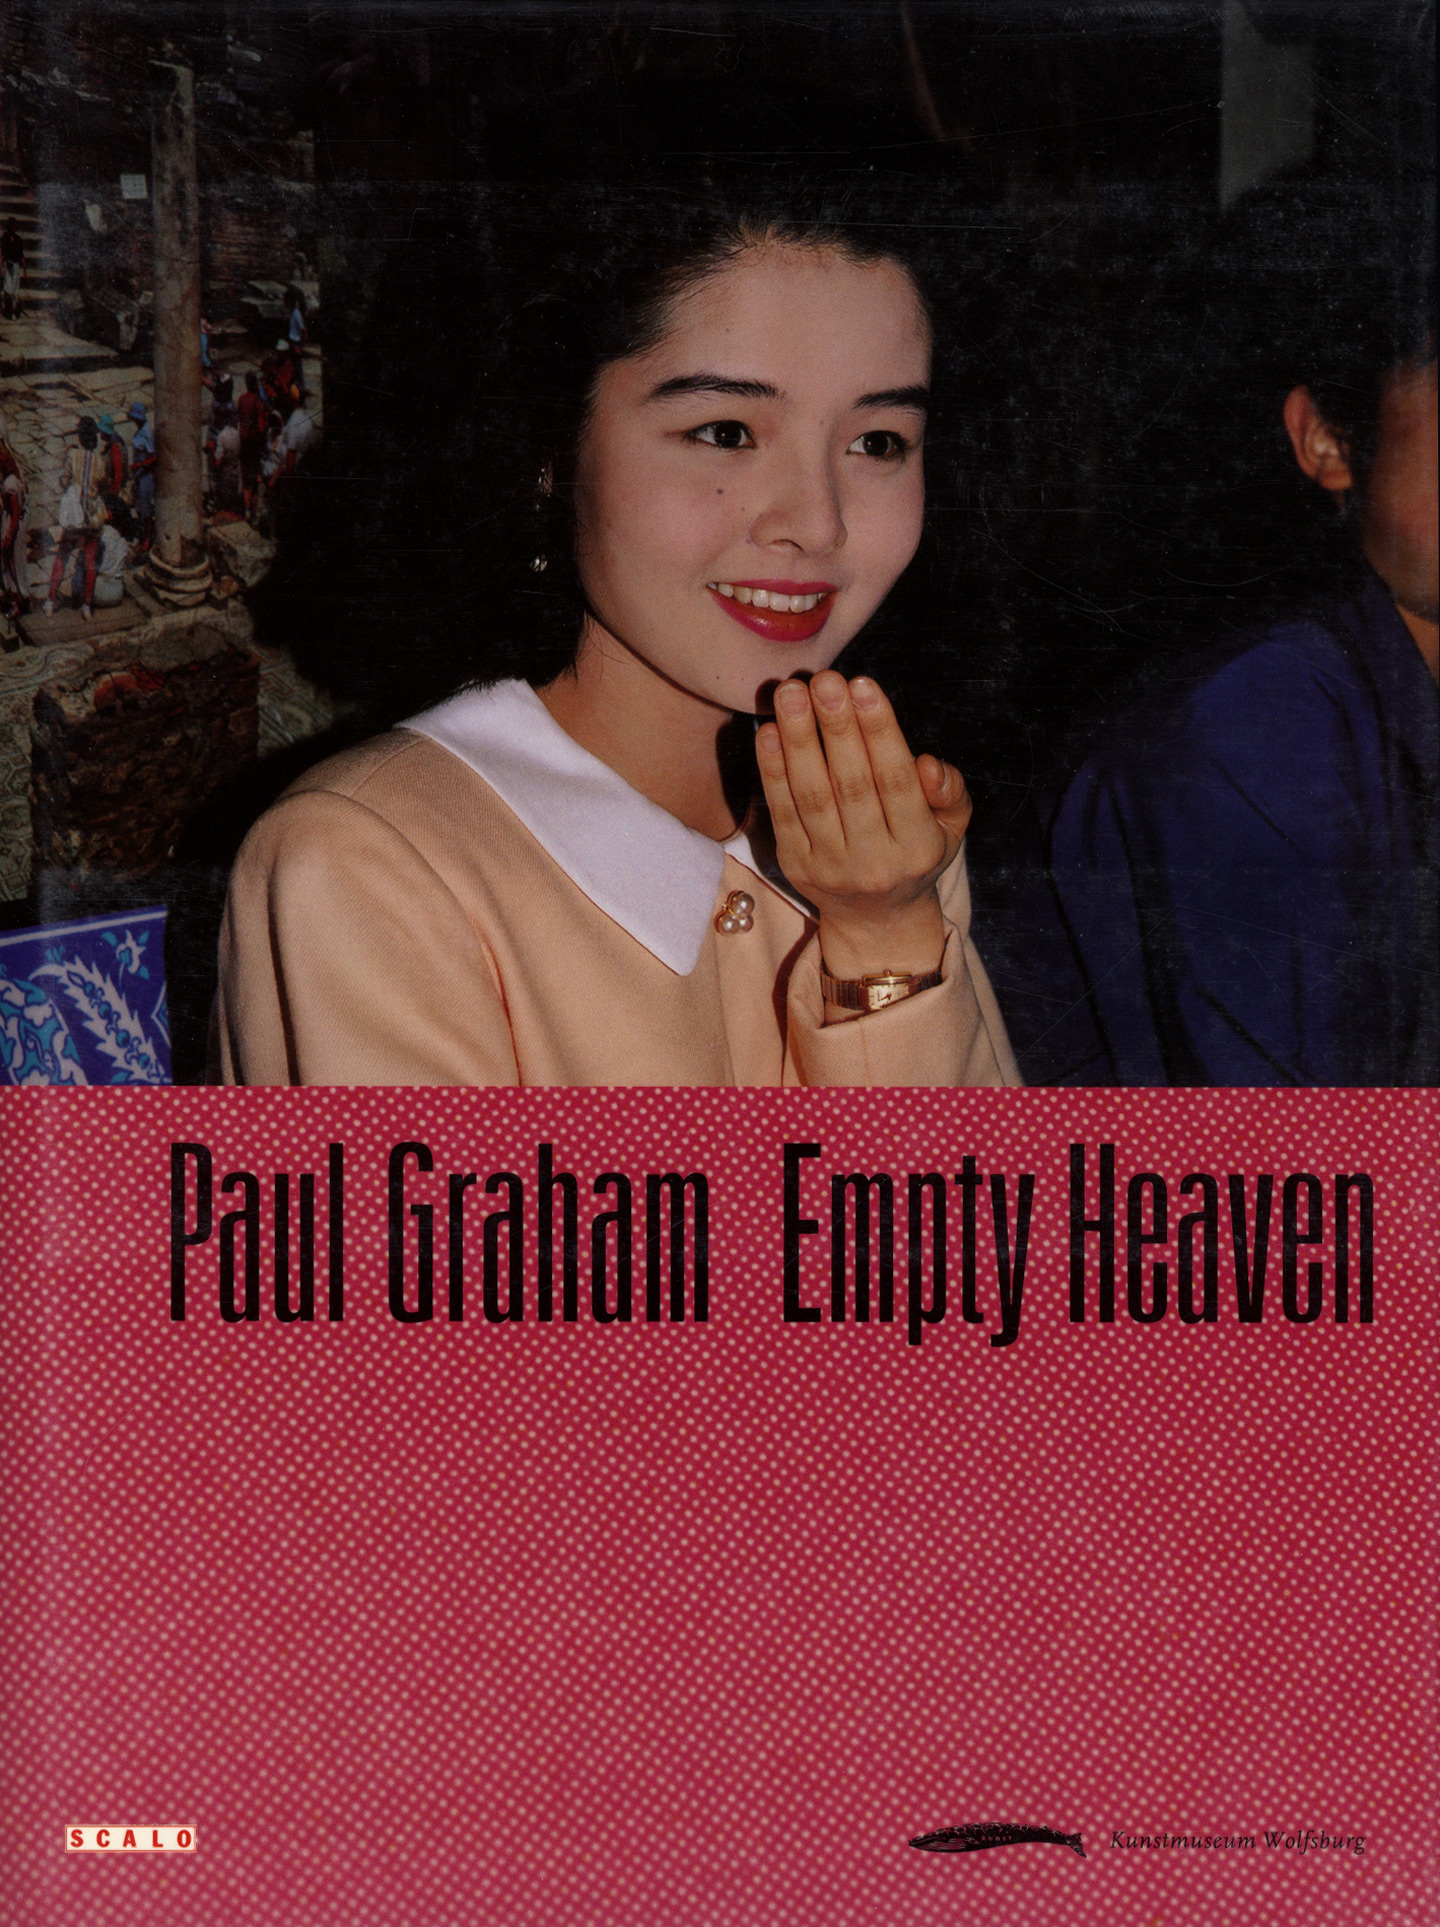 Paul Graham: Empty Heaven -- Photographs from Japan 1989-1995